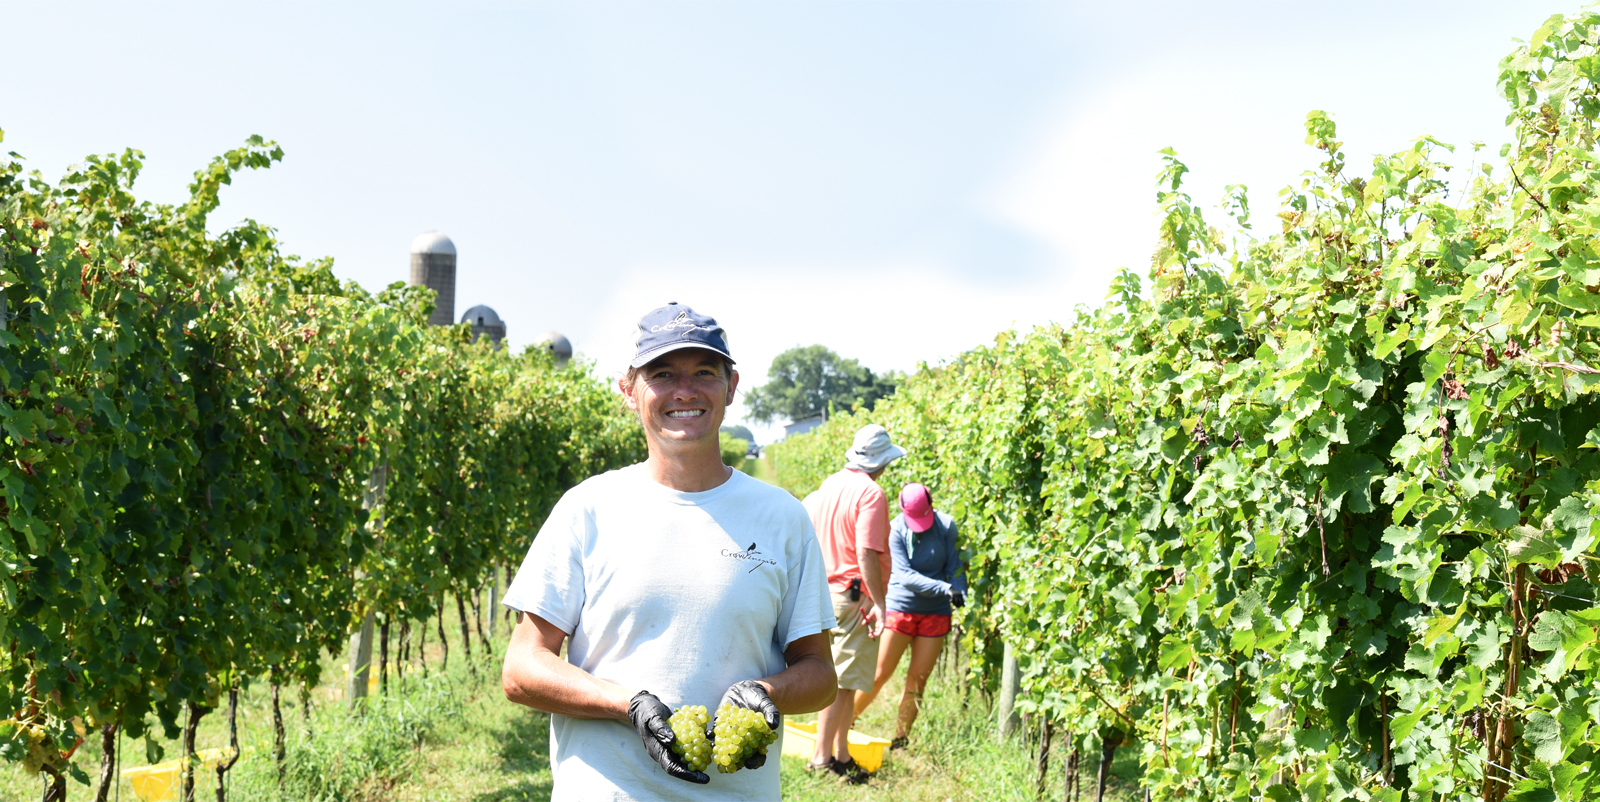 Crow Vineyard & Winery harvest